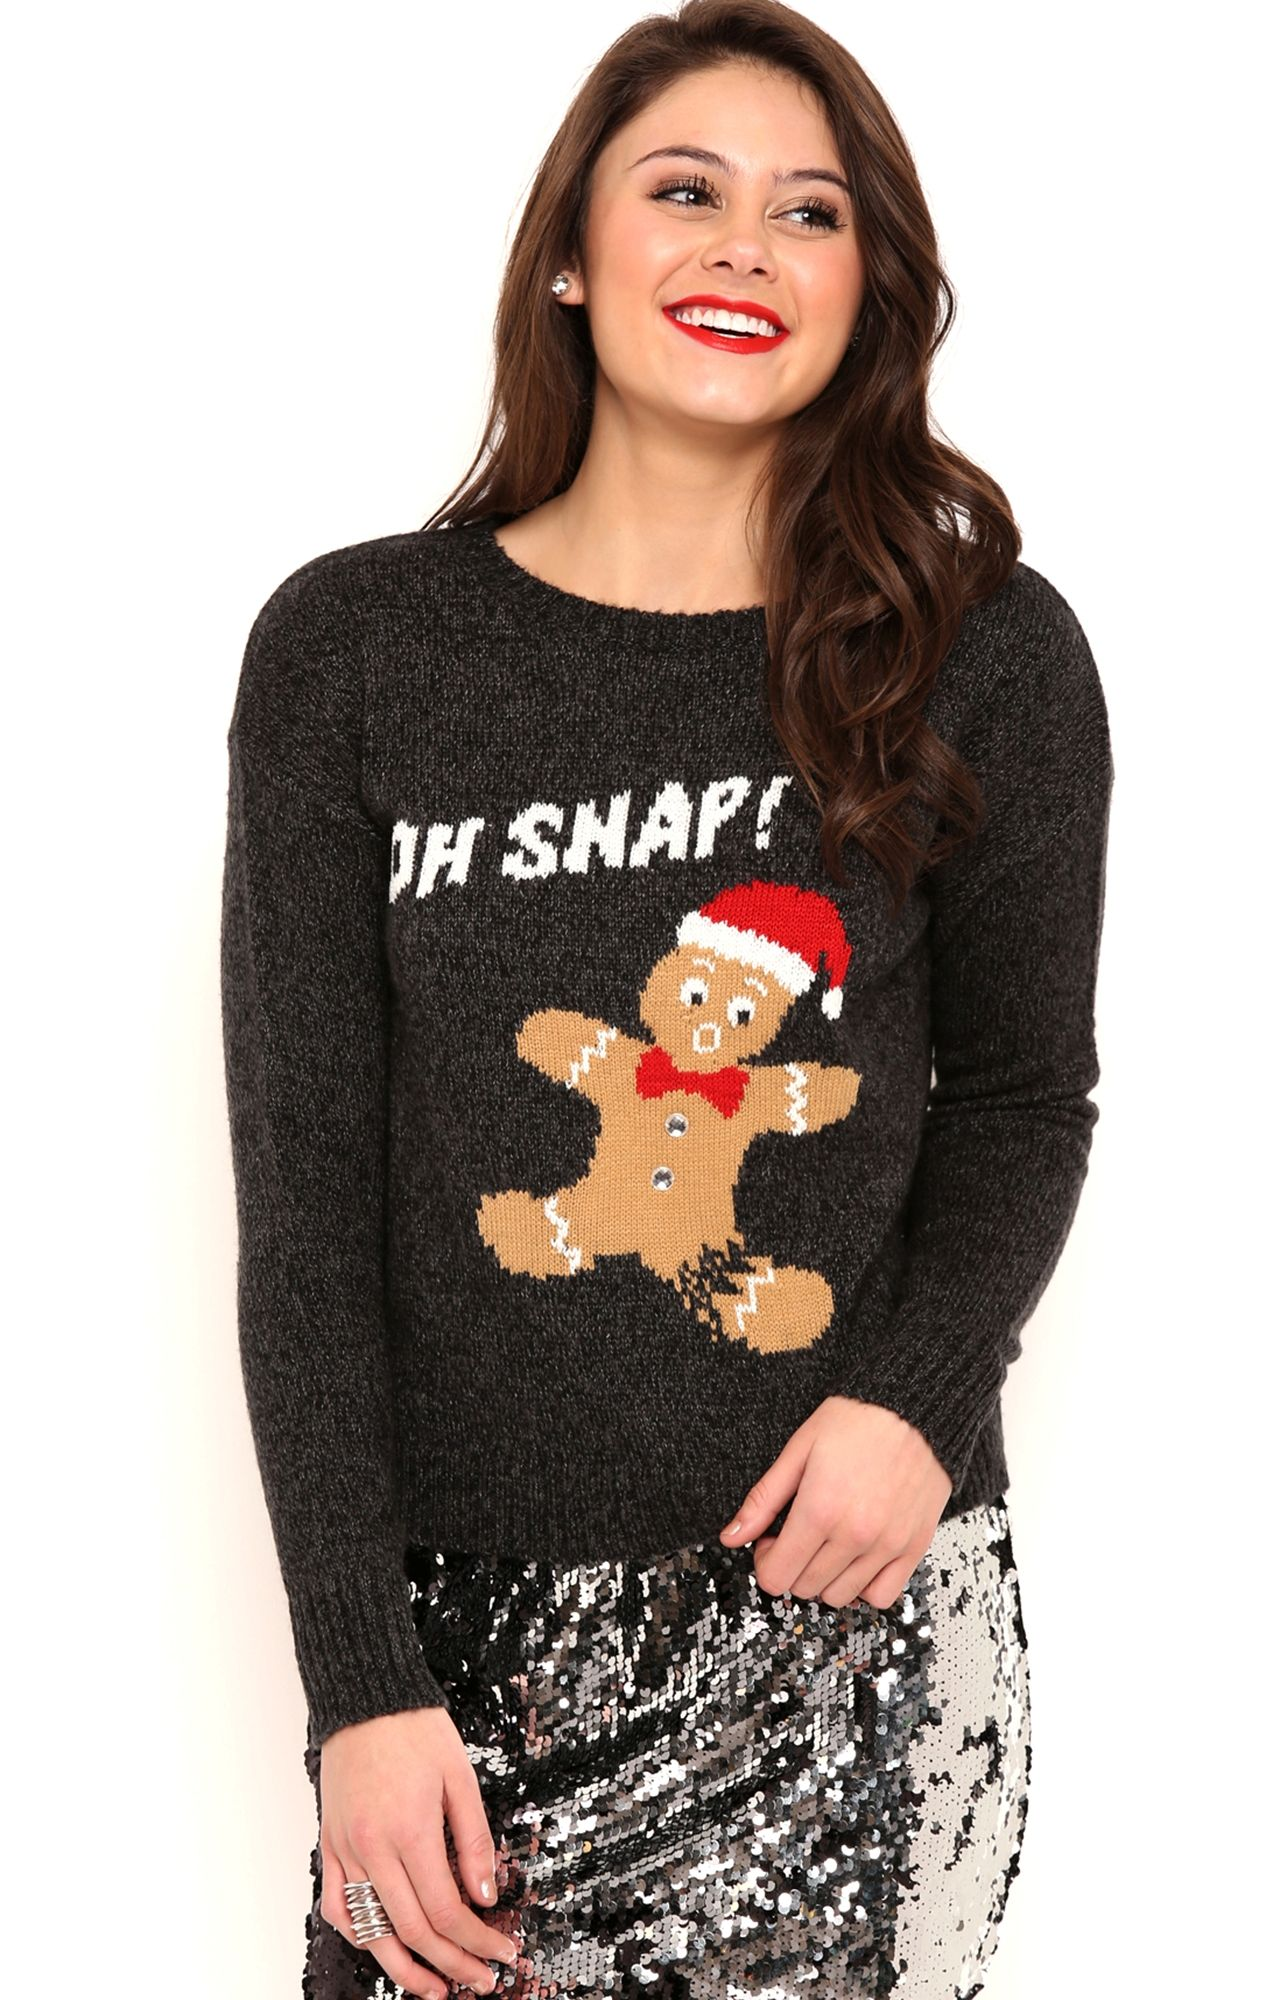 deb shops long sleeve gingerbread holiday sweater with oh snap screen 1770 cute